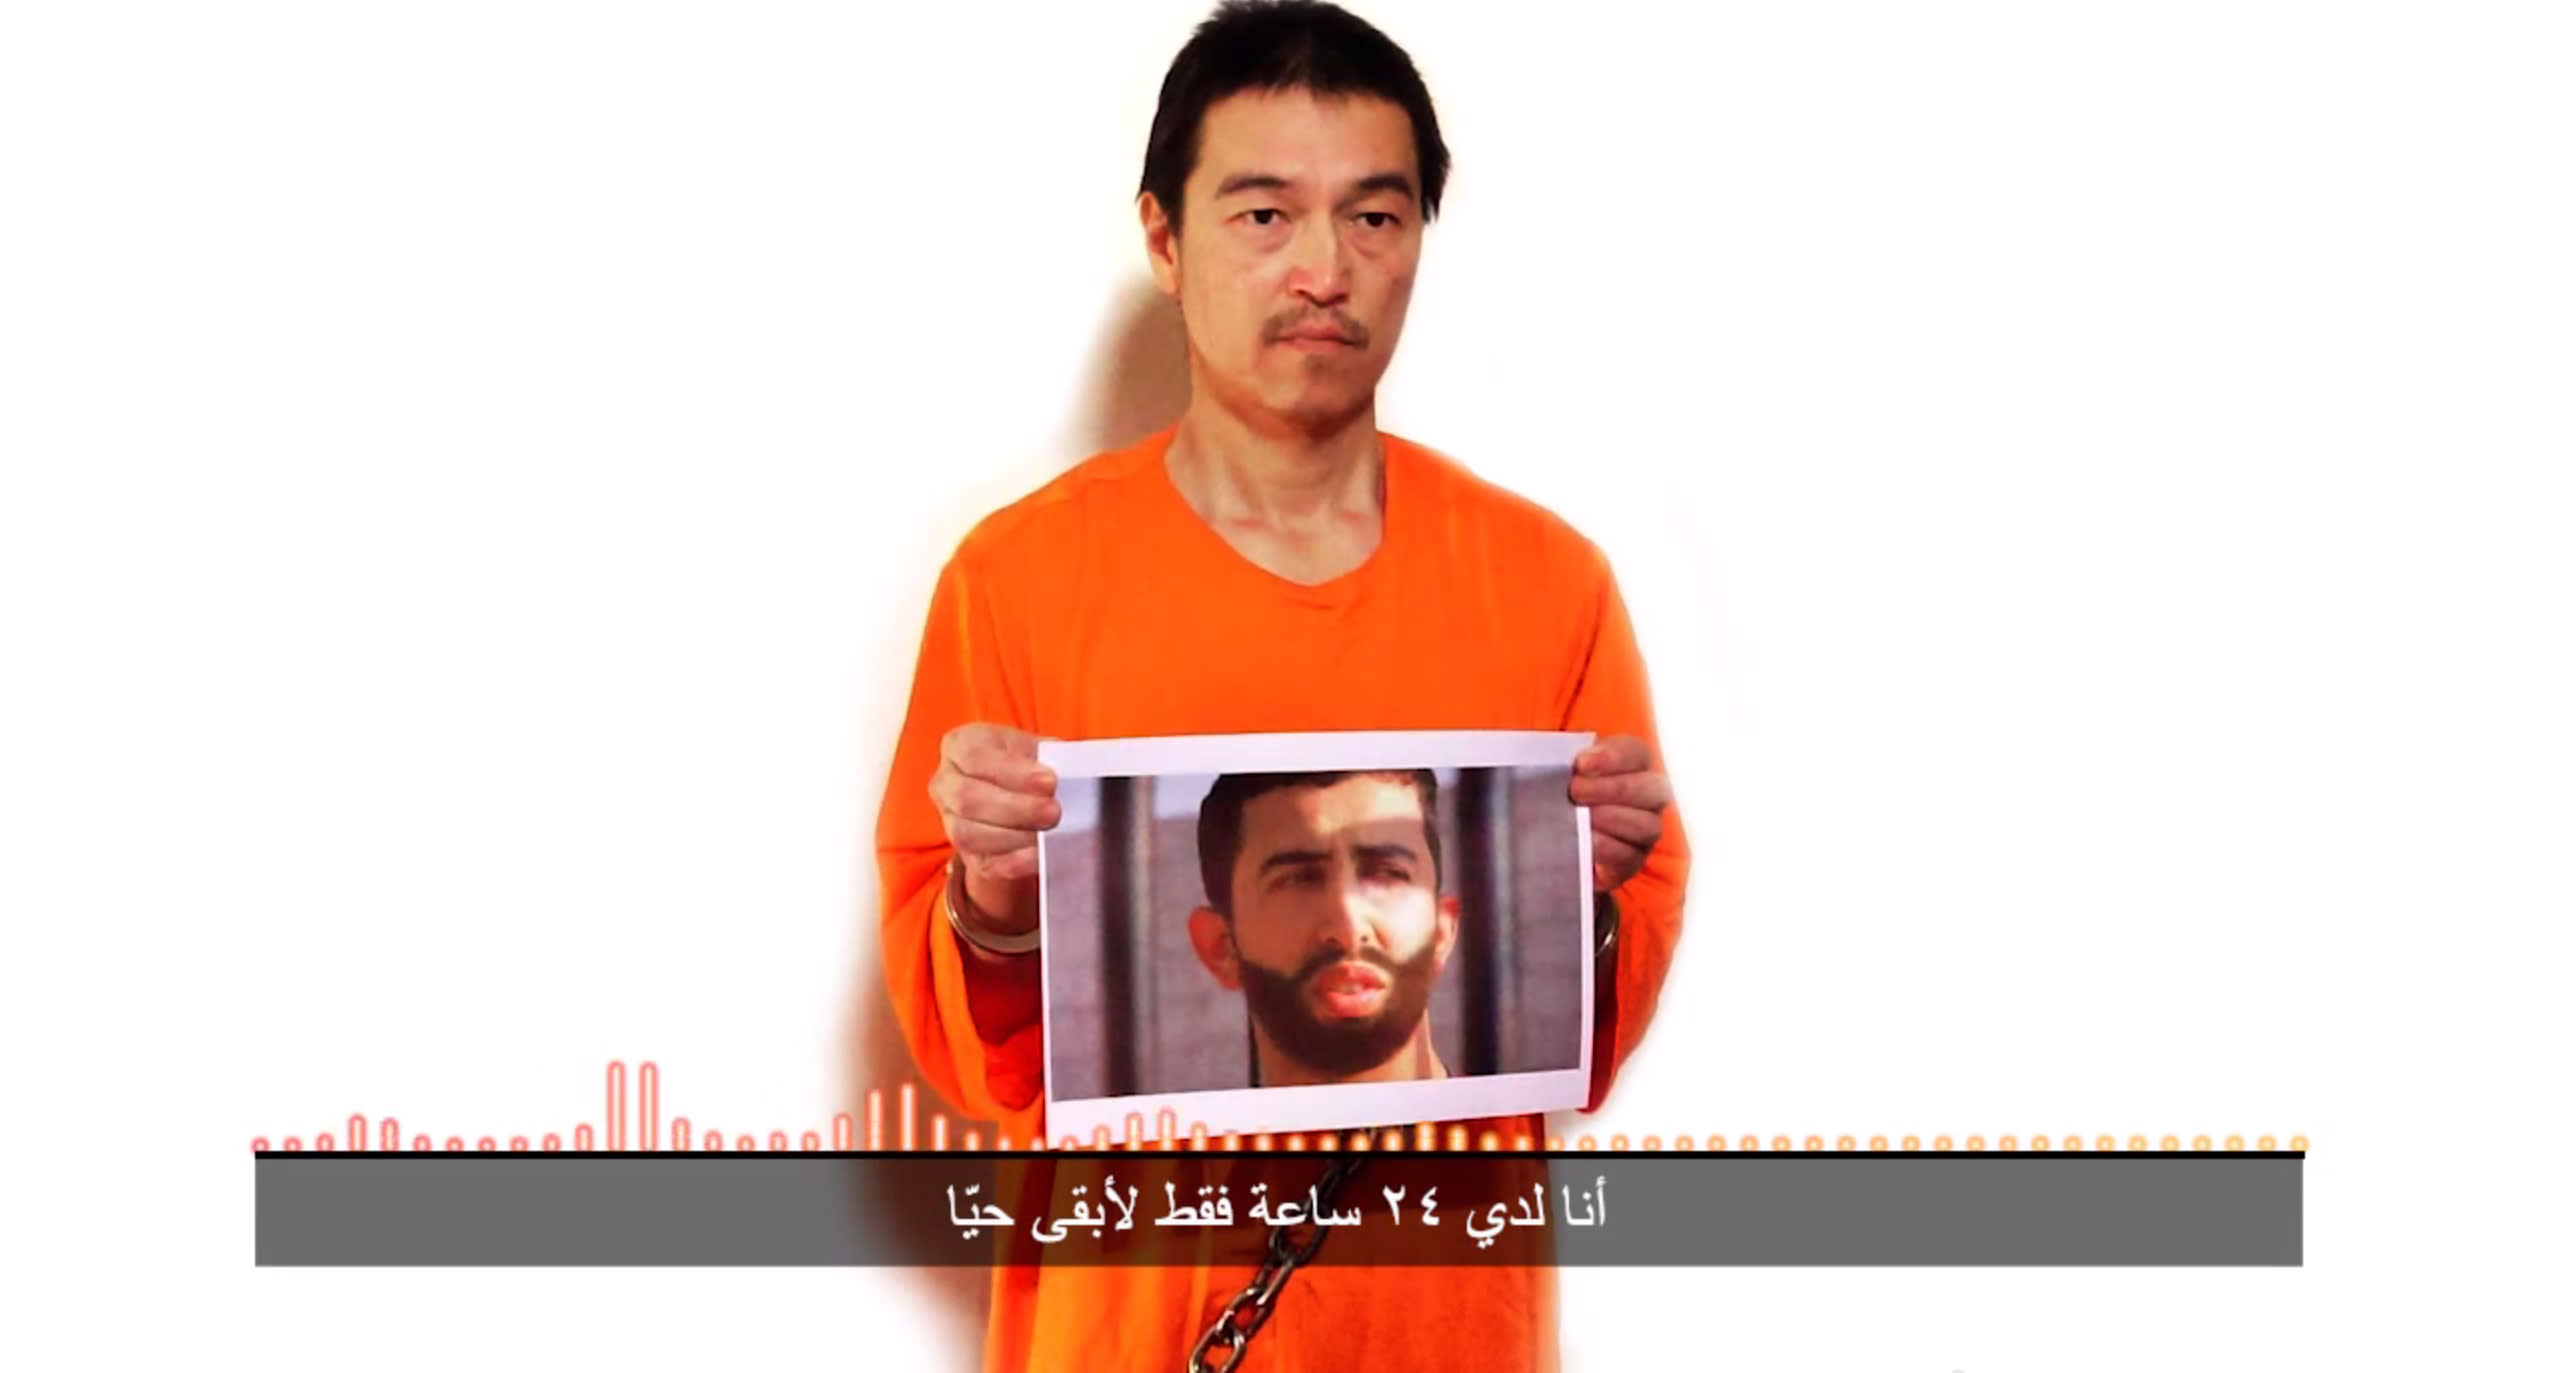 Japanese journalist, Kenji Goto, held hostage by Islamic State militants